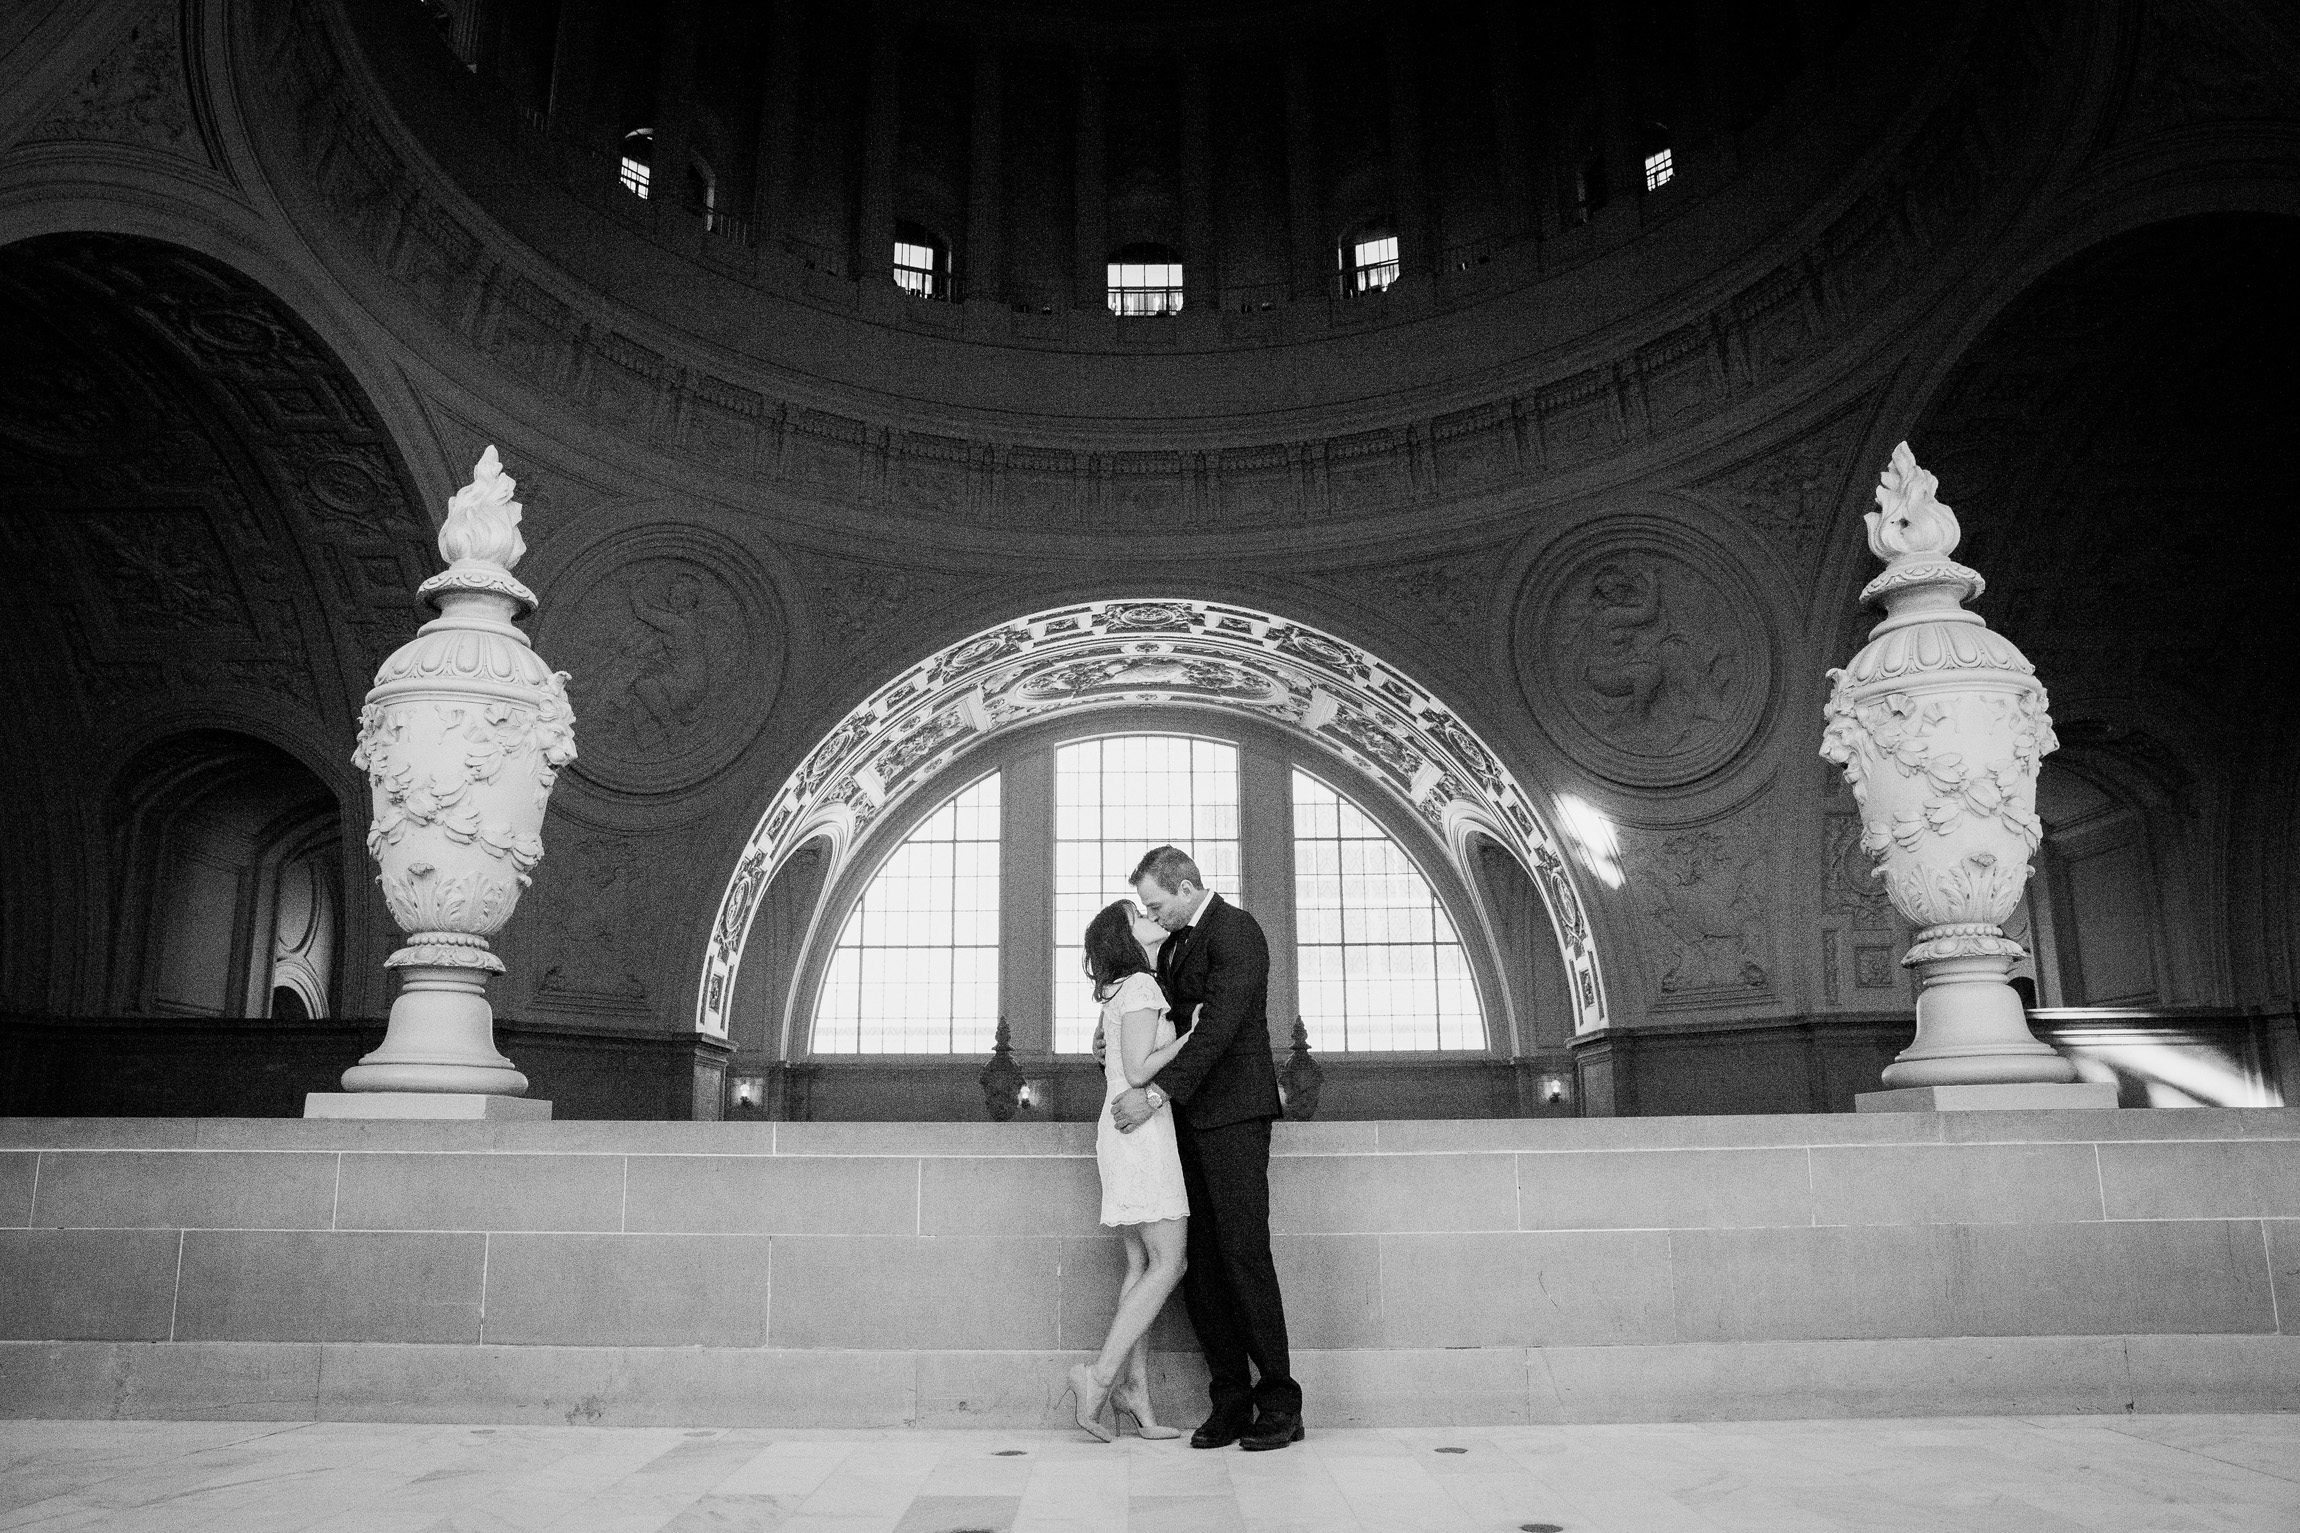 026_janaeshieldsphotography_sanfrancisco_cityhall_weddings.jpg